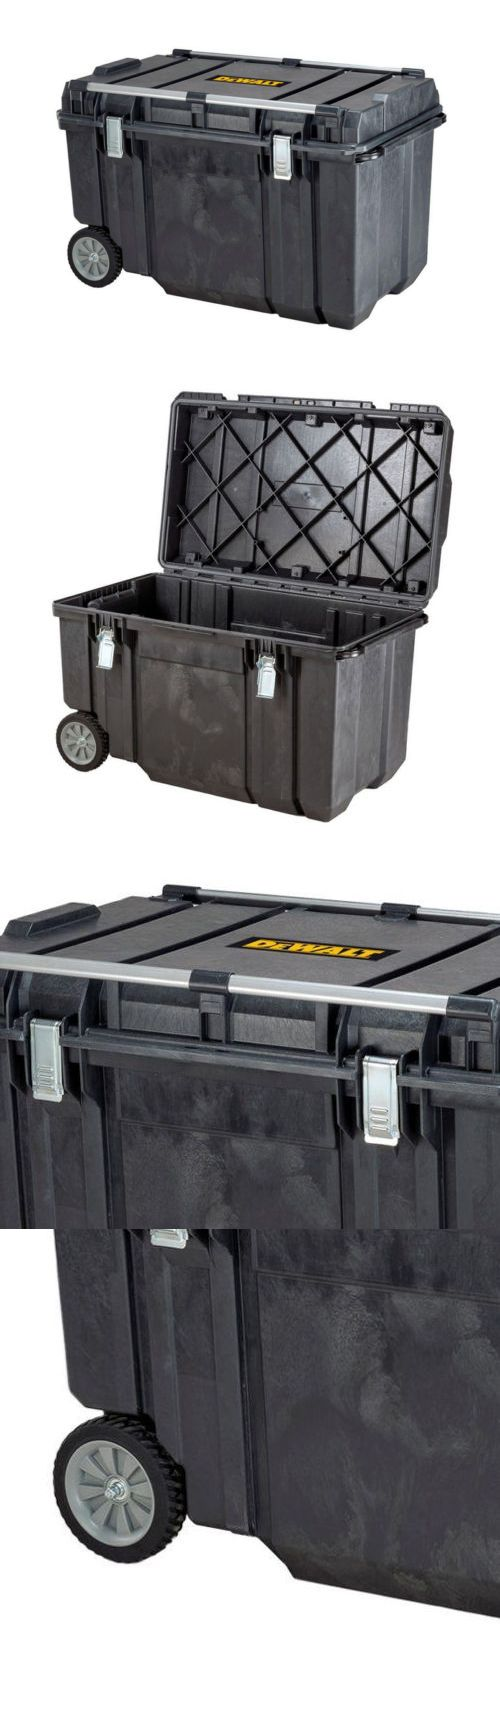 Boxes and Cabinets 42363: Dewalt 38 Inch Mobile Tough Wheeled Tool Box Chest Storage Portable Organizer -> BUY IT NOW ONLY: $156.95 on eBay!